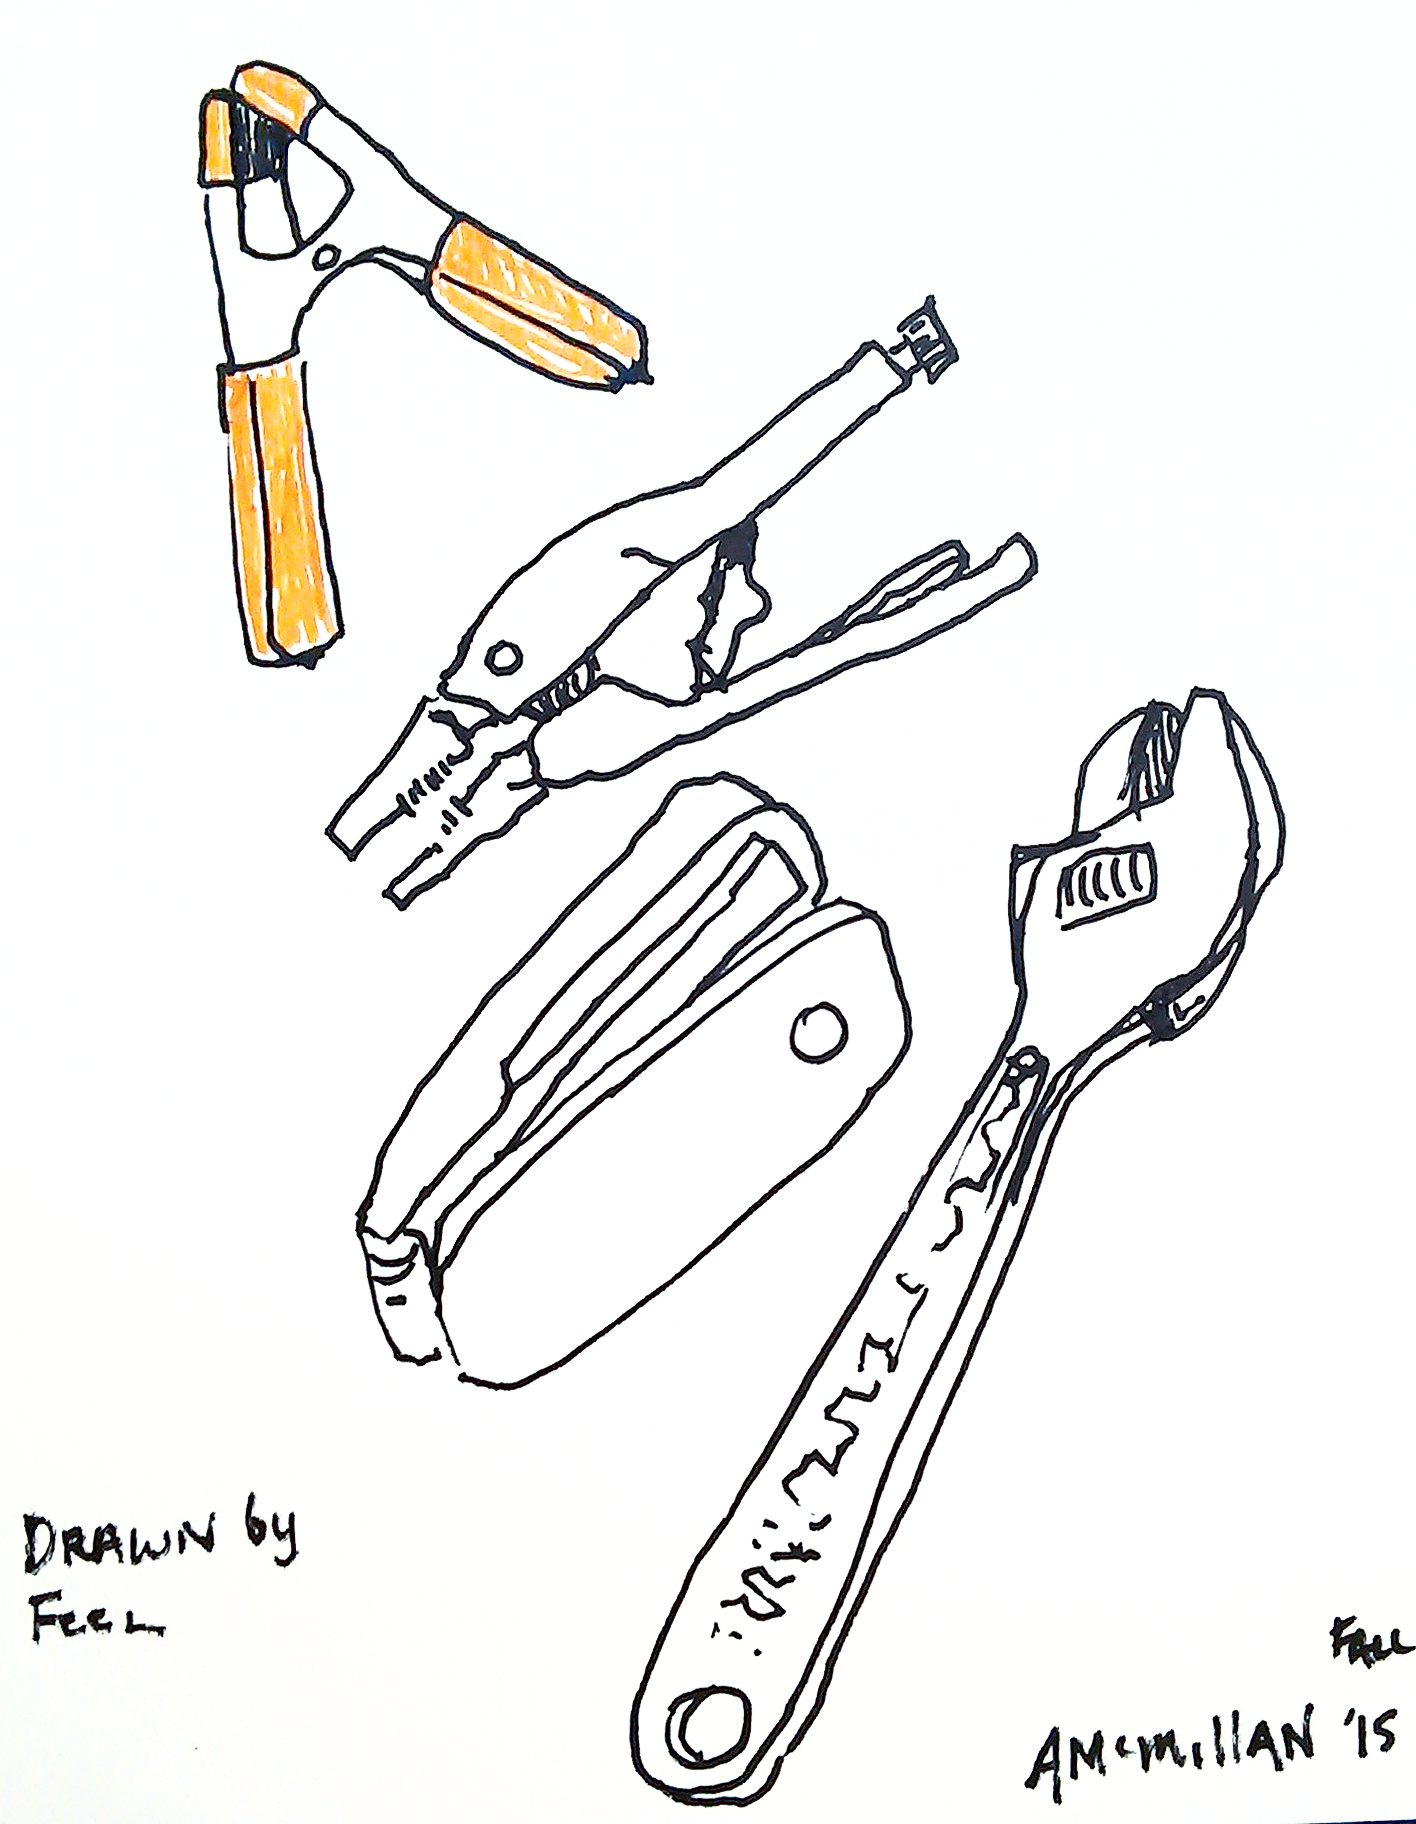 Tools drawn by feel rather than sight.